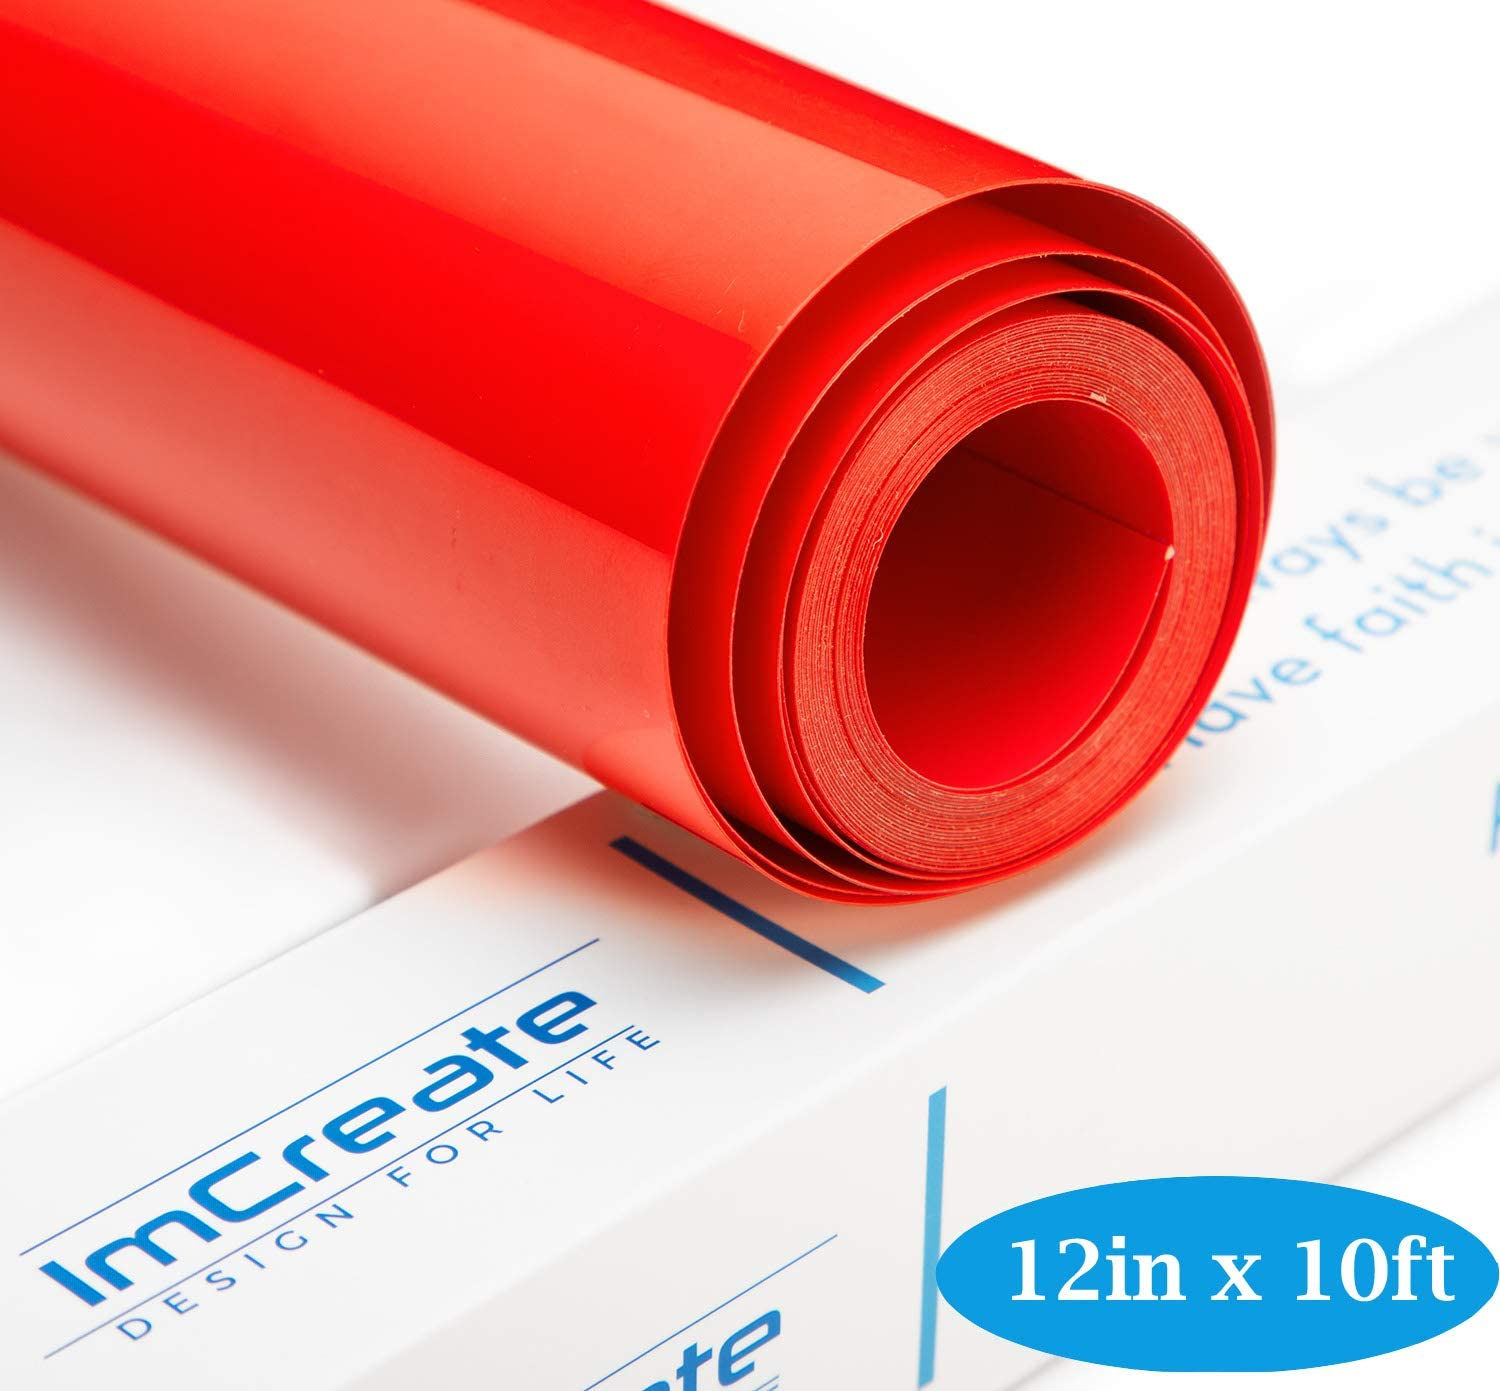 Red Iron Vinyl Heat Transfer Vinyl Red Roll HTV Iron On Vinyl for 12 Inches by red htv Vinyl 10 Feet Cricut and Silhouette Cameo (Red htv Roll)